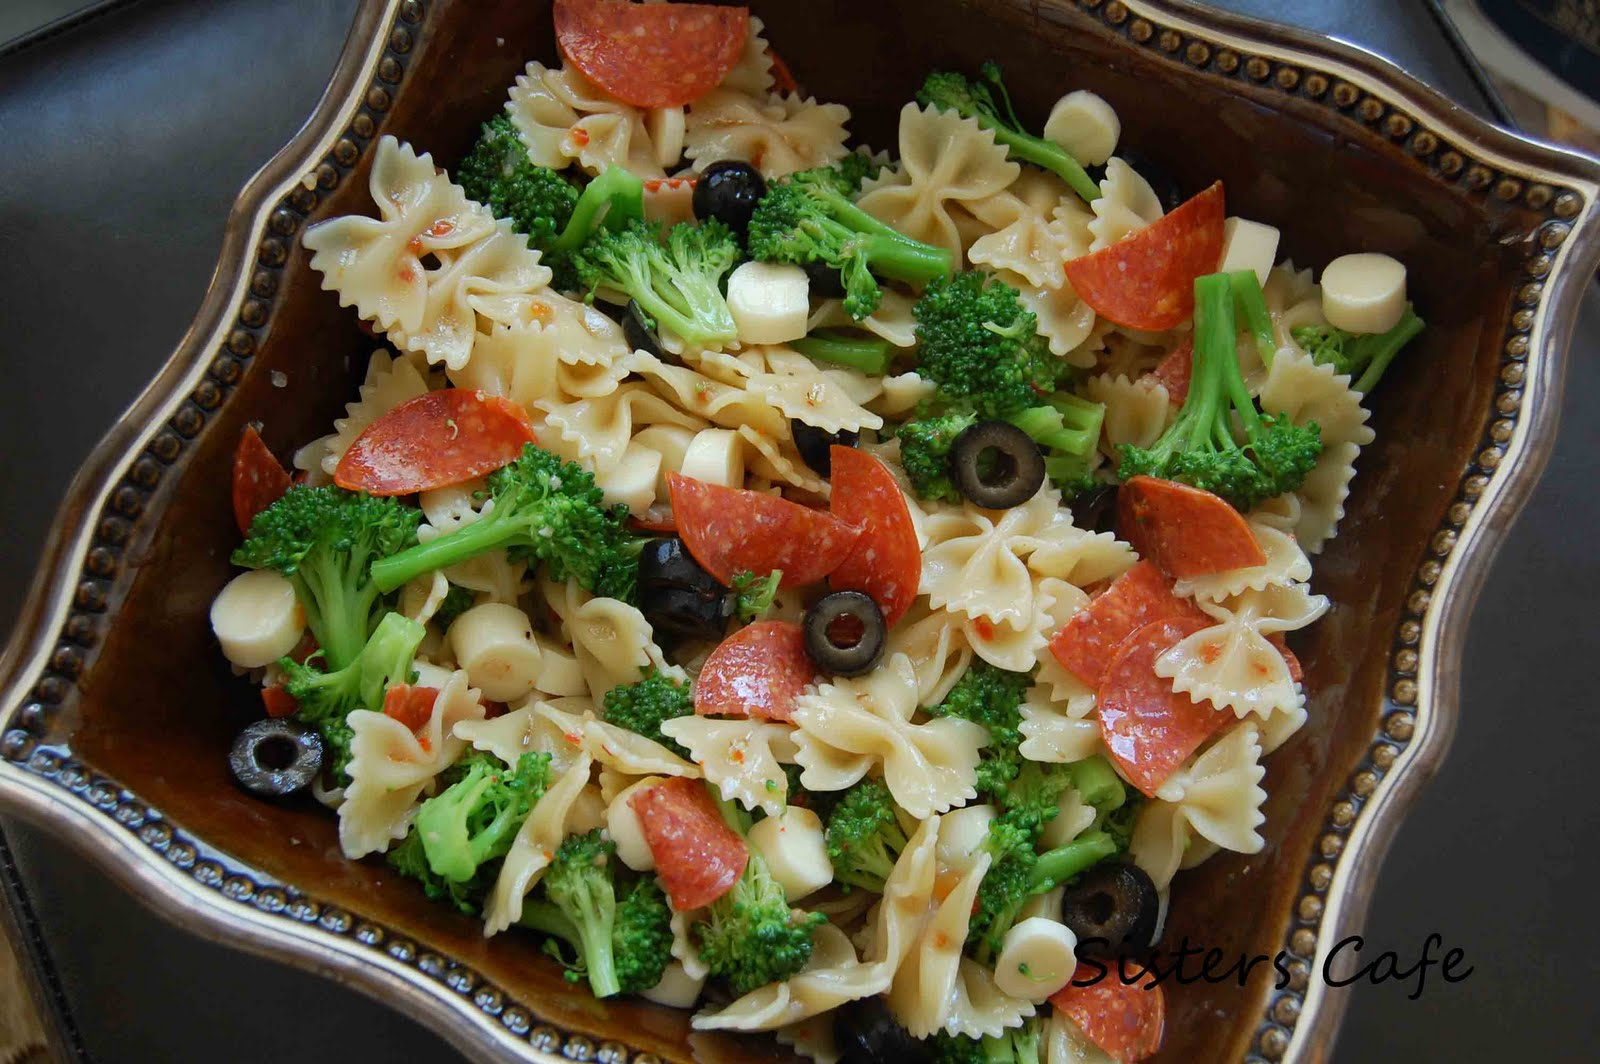 Italian Pasta Salad | The Sisters Cafe